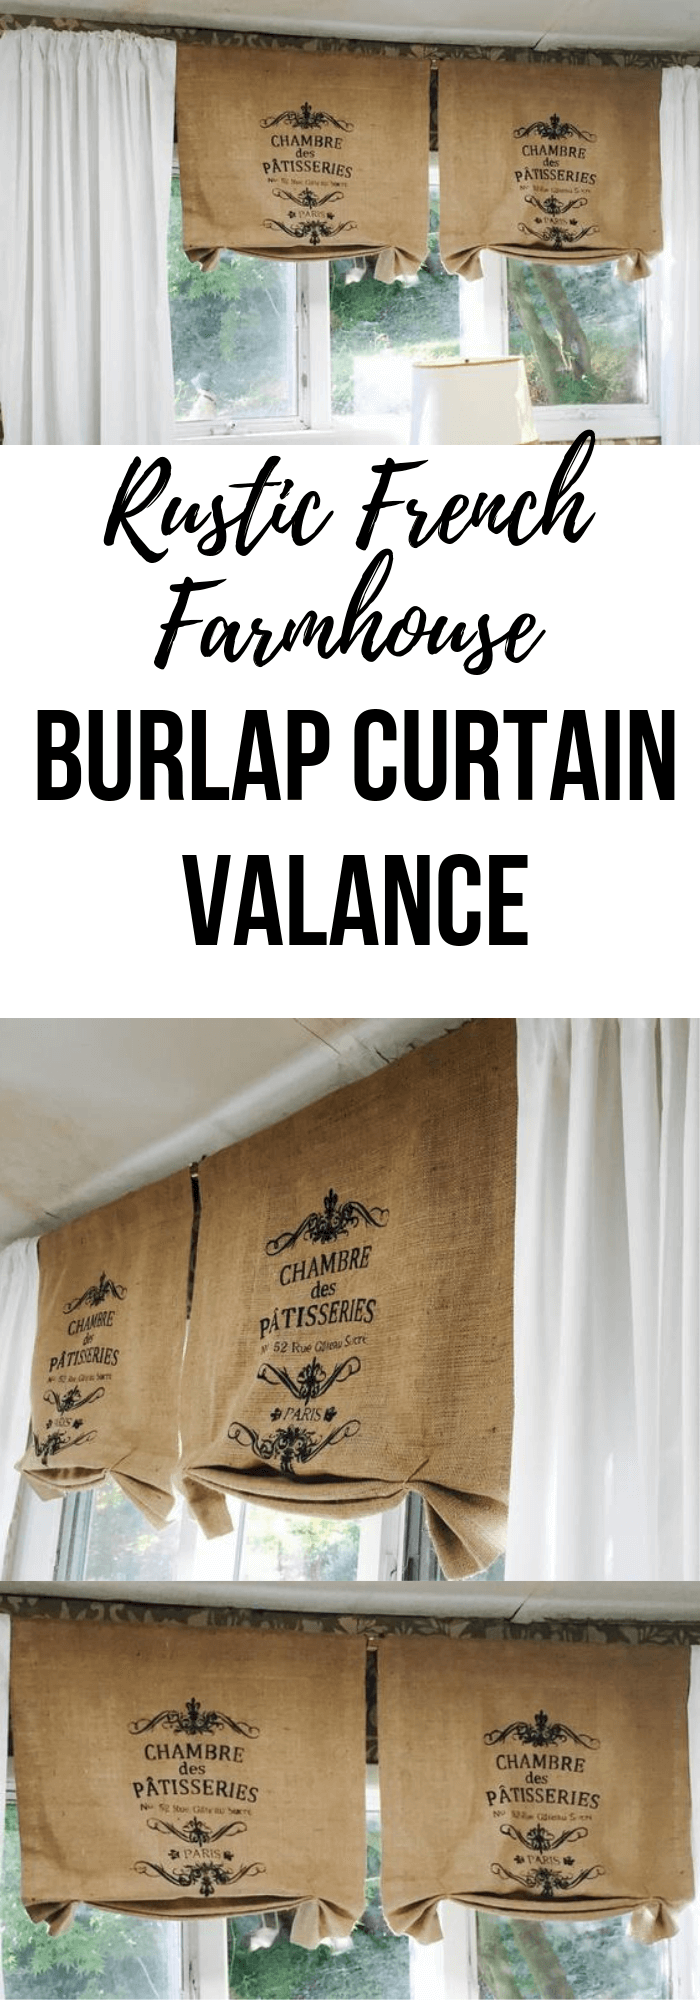 Rustic French style Patisseries Burlap Curtain Valance